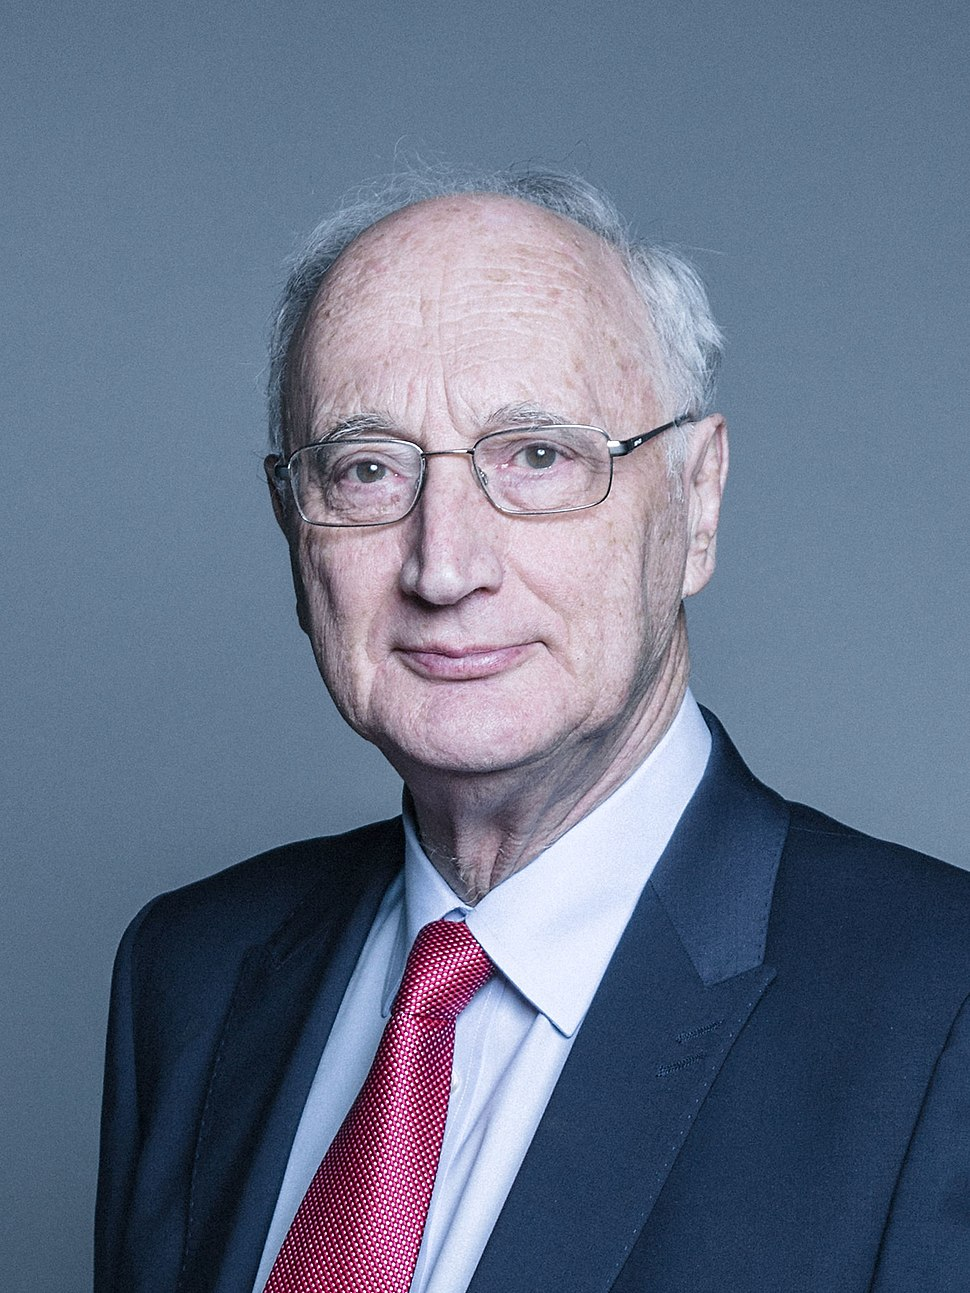 Official portrait of Lord Young of Cookham crop 2